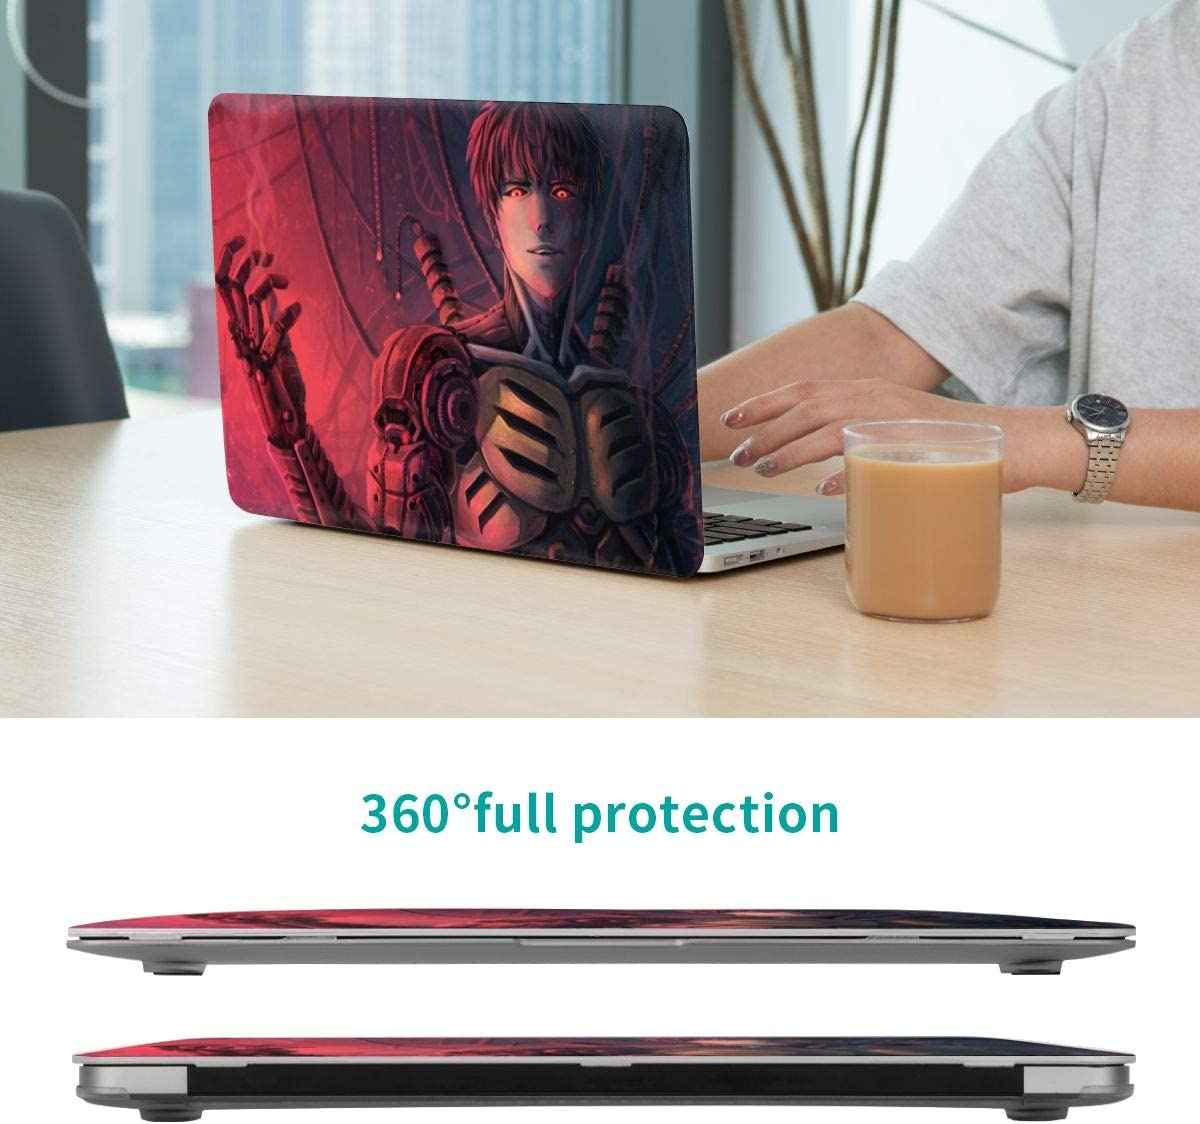 Genos One Punch Man Pro 15 Inch Case 2019 2018 2017 2016 Release A1990 A1707 Laptop Cover Protective Case for Pro 15 Inch